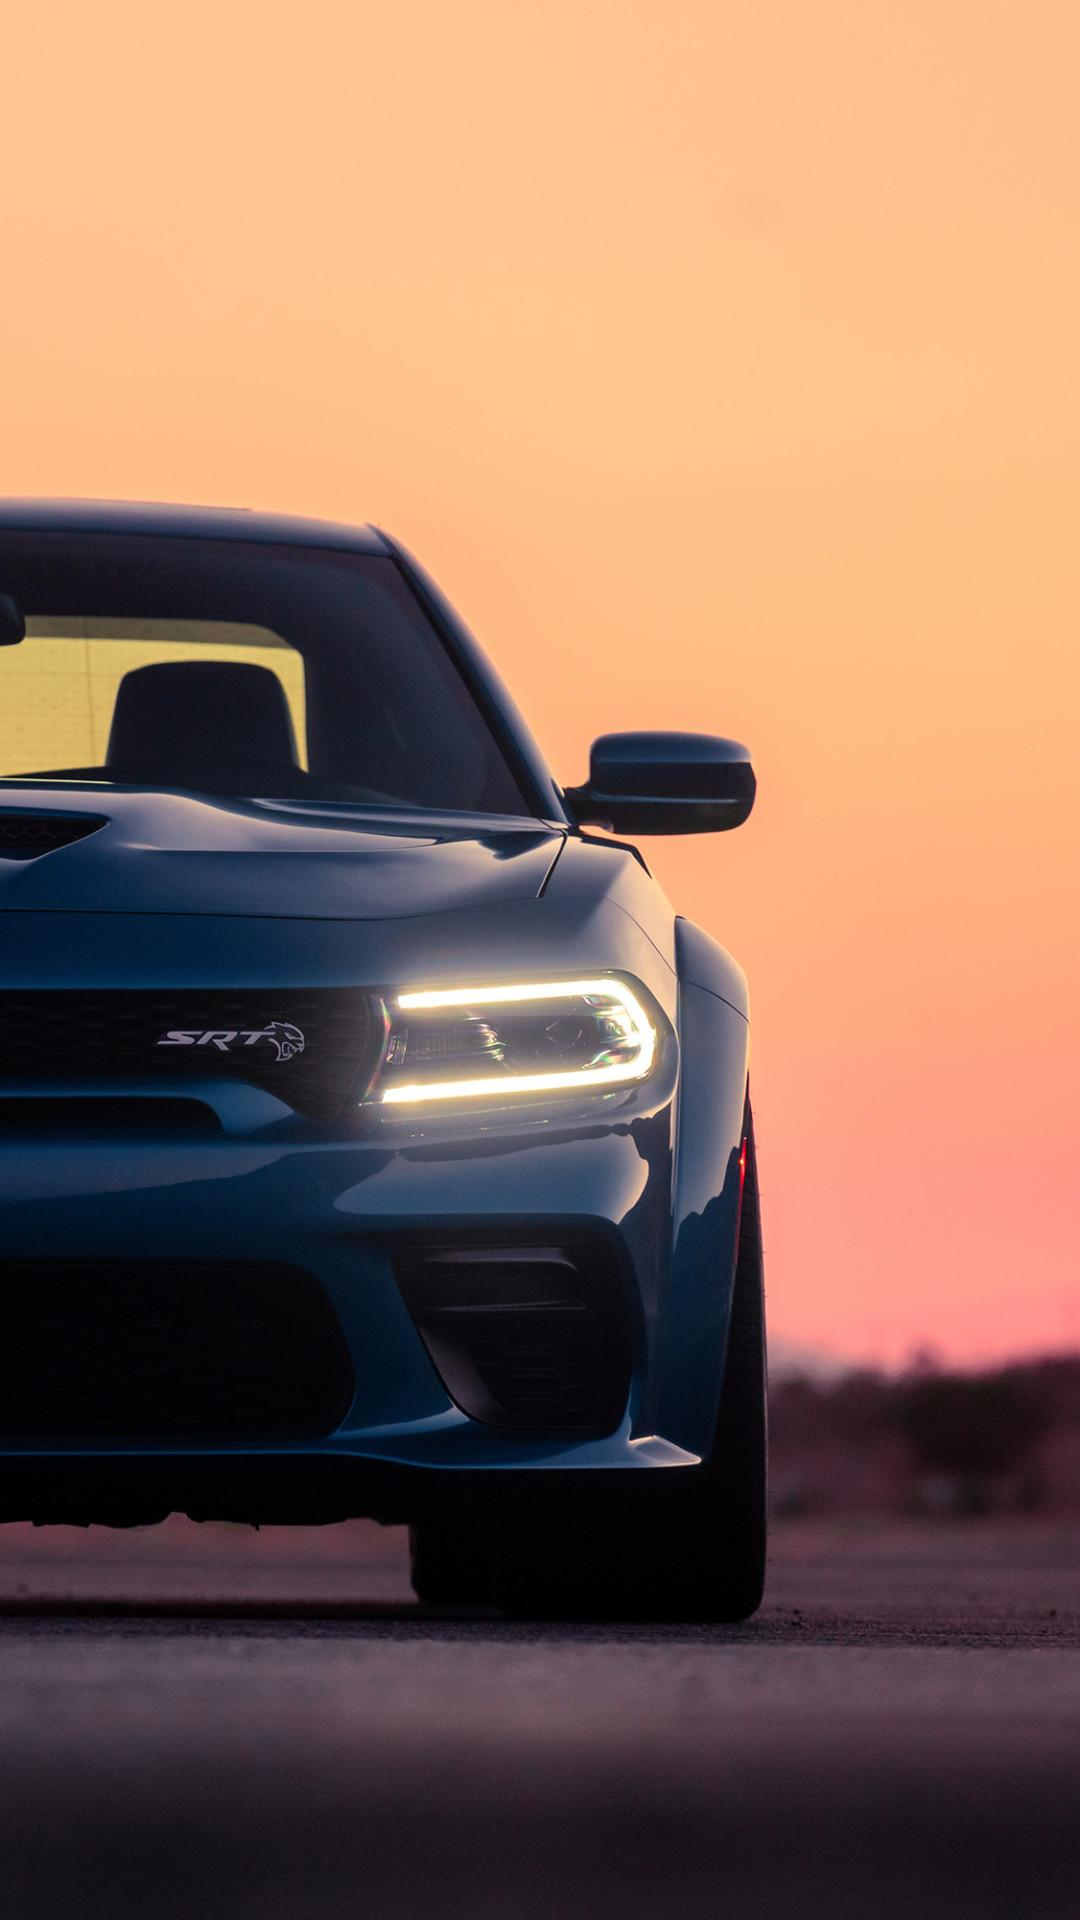 Srt Dodge Car 4k Iphone 2020 Wallpapers Wallpaper Cave